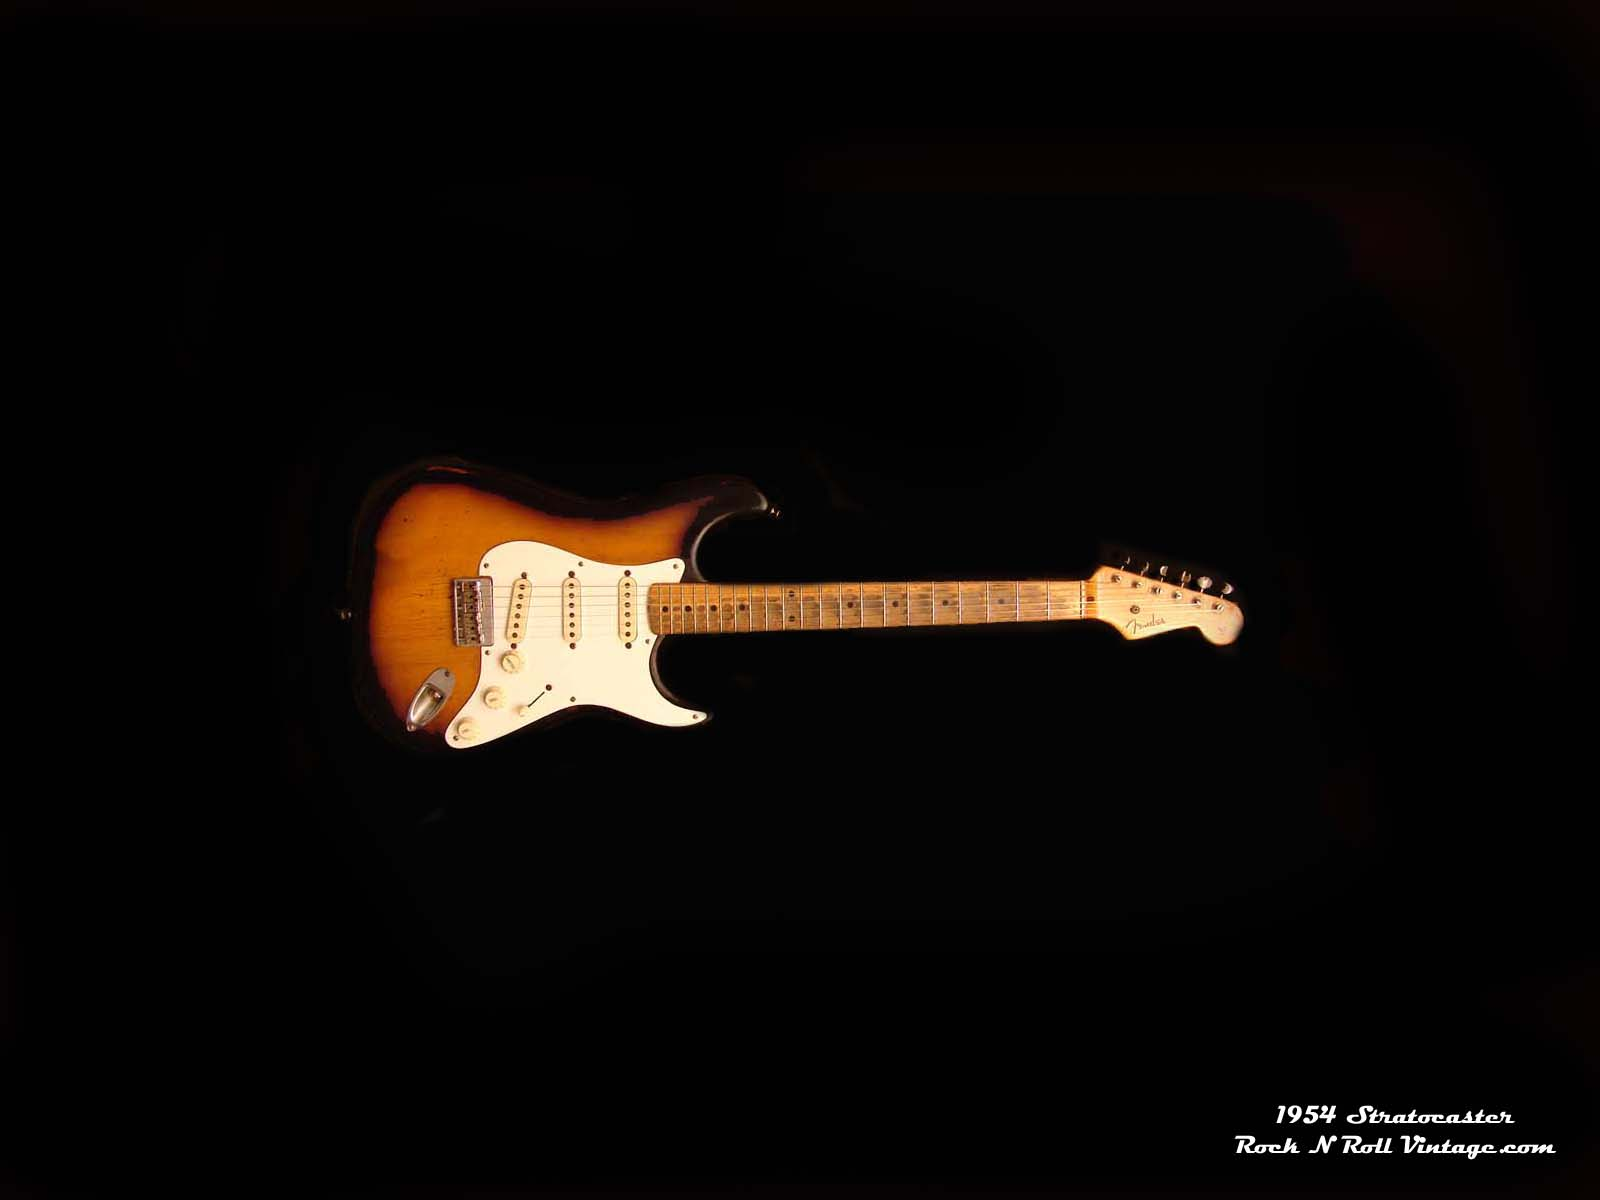 fender jaguar wallpaper - photo #33